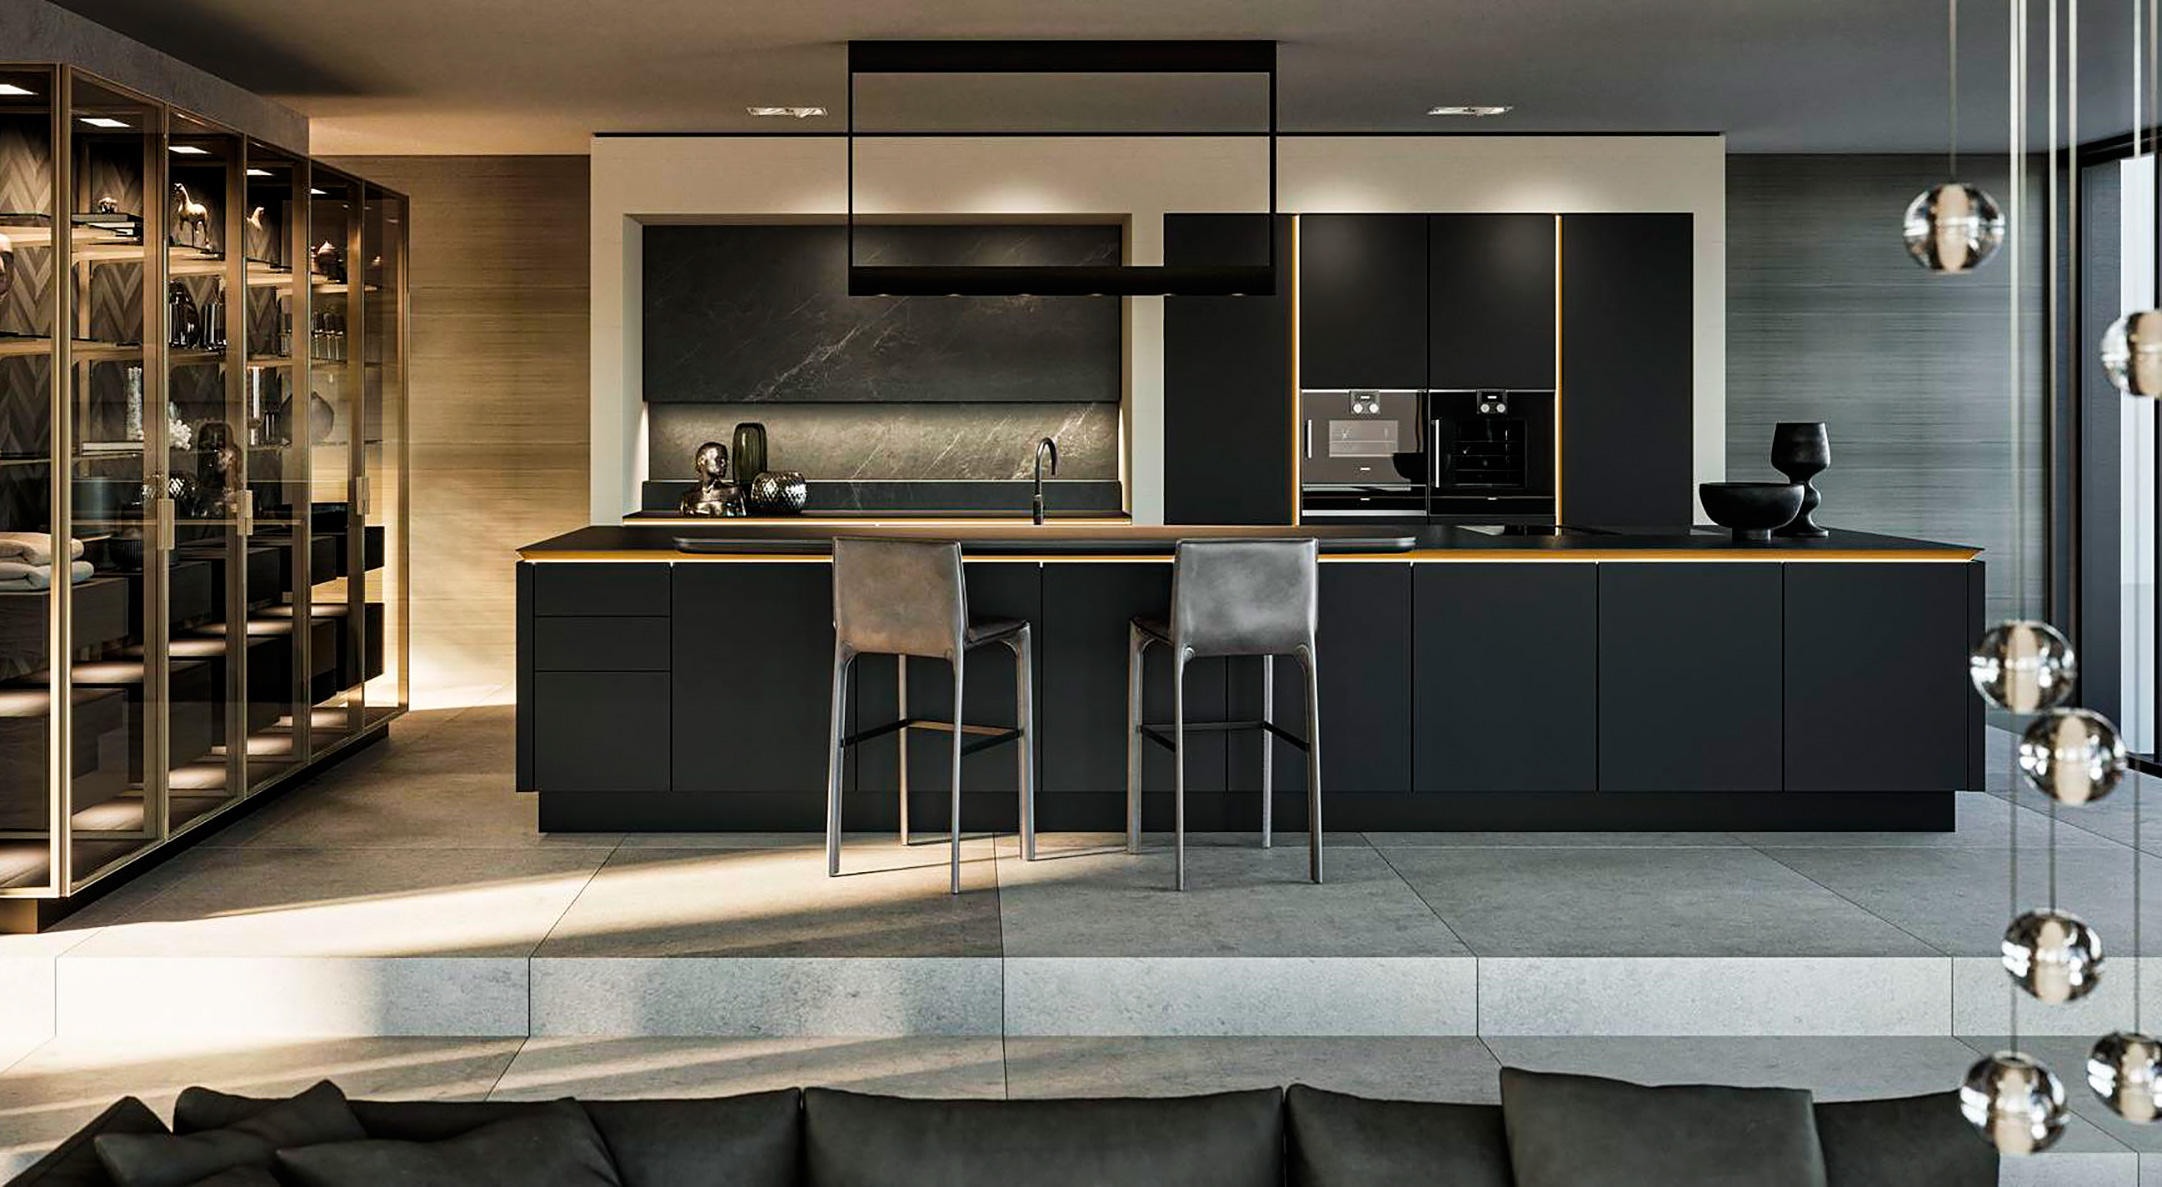 Showroom oficial cocinas de diseño SieMatic en Madrid